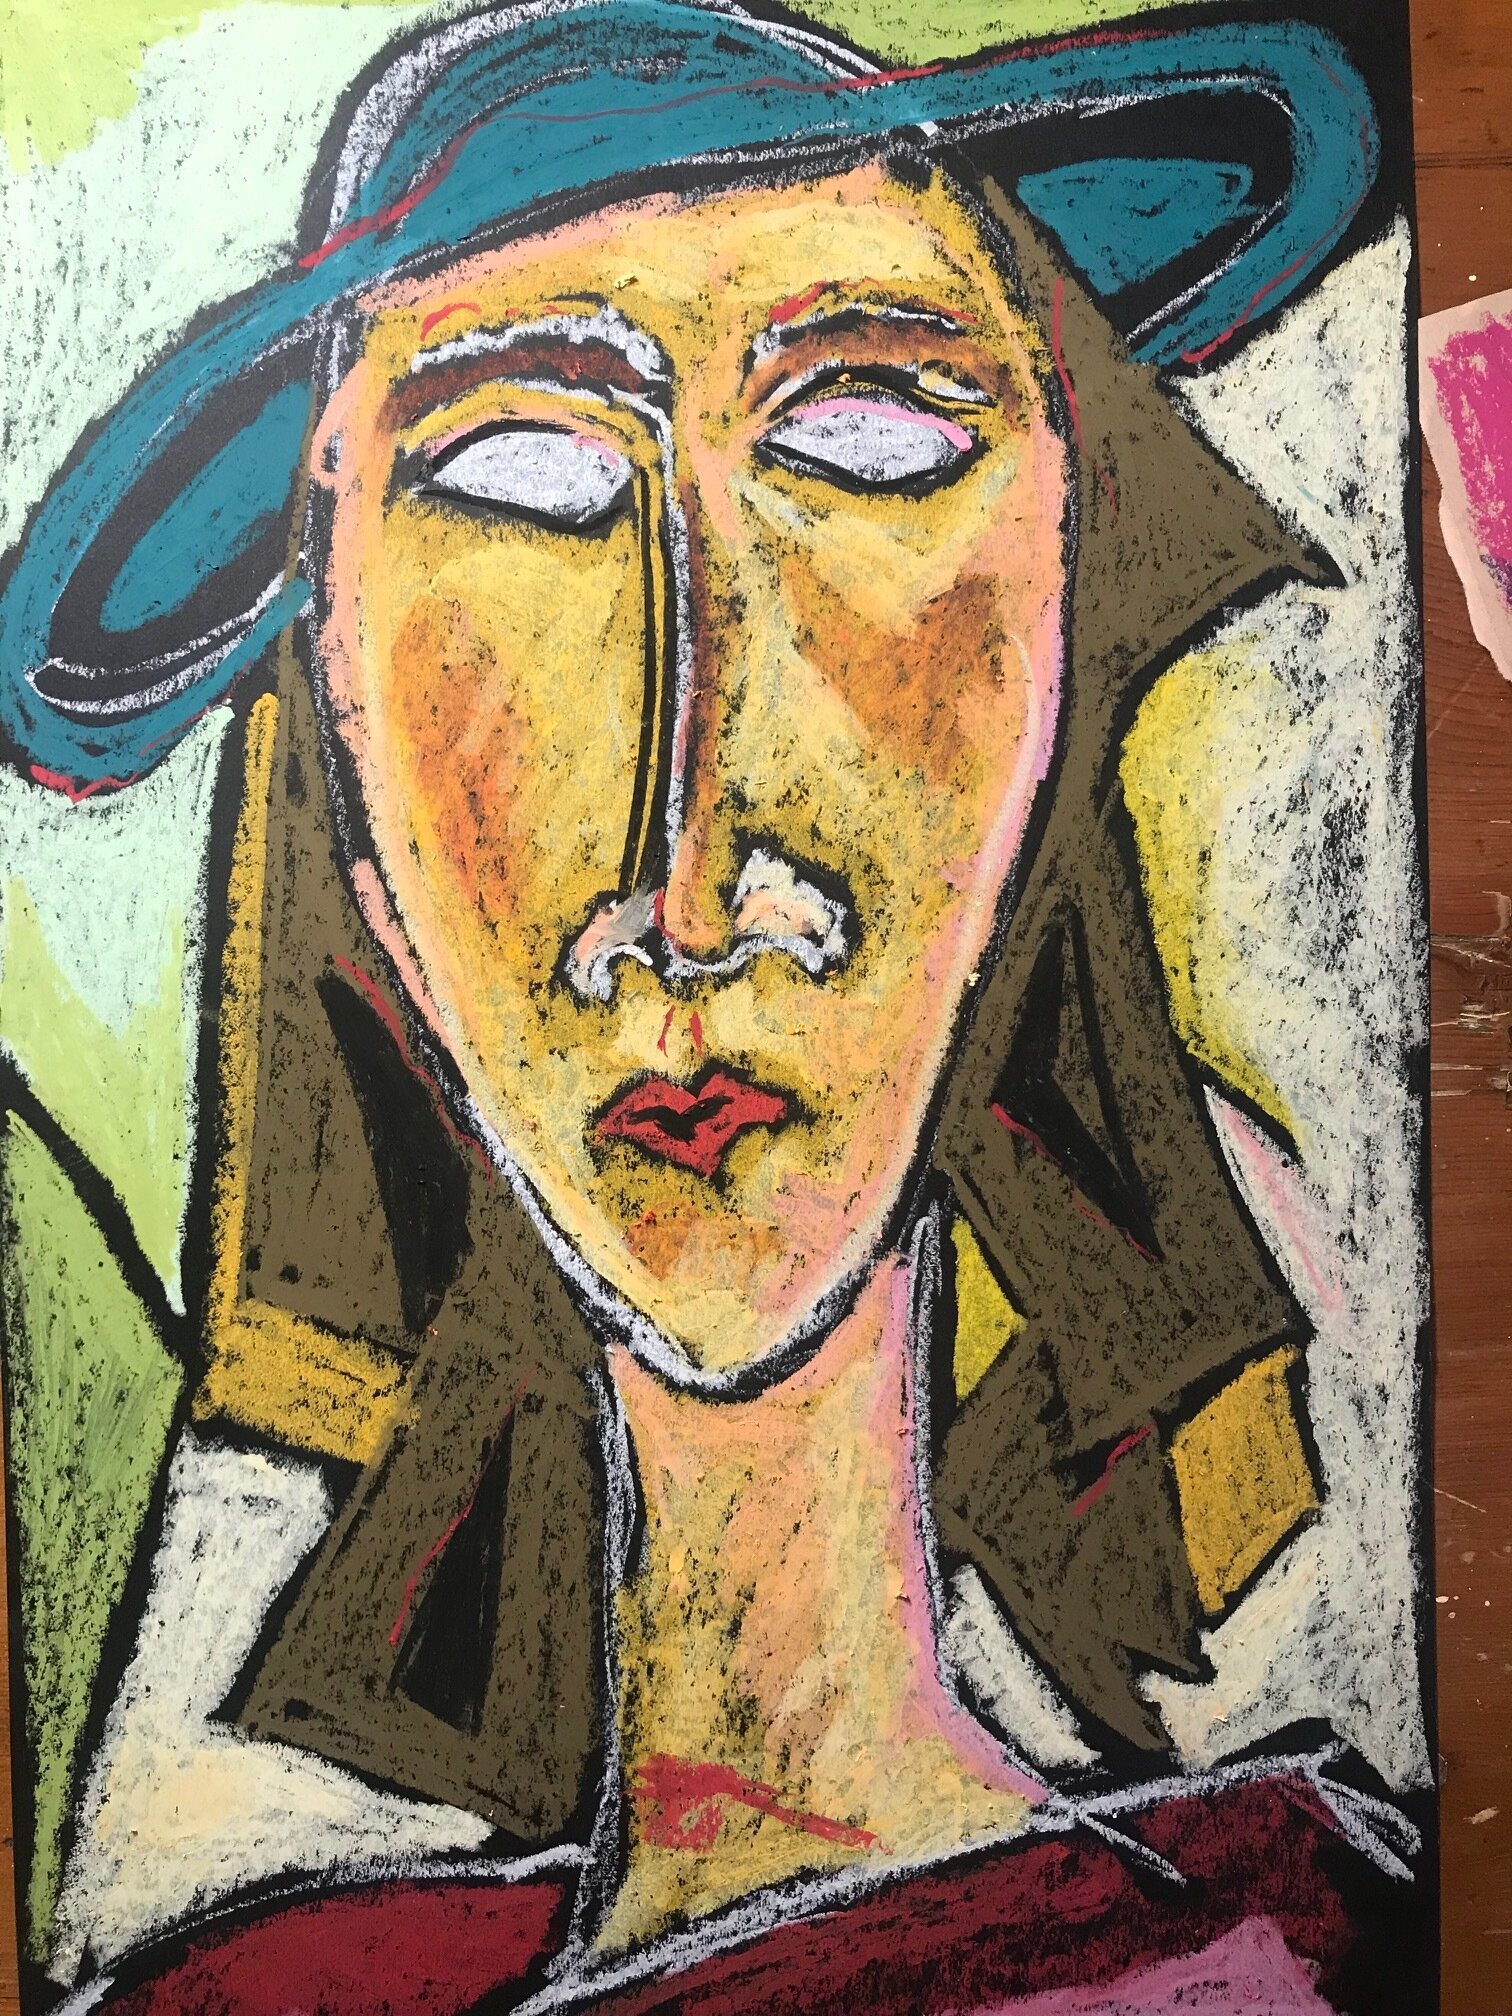 Who is Modigliani, and, why the long face? -